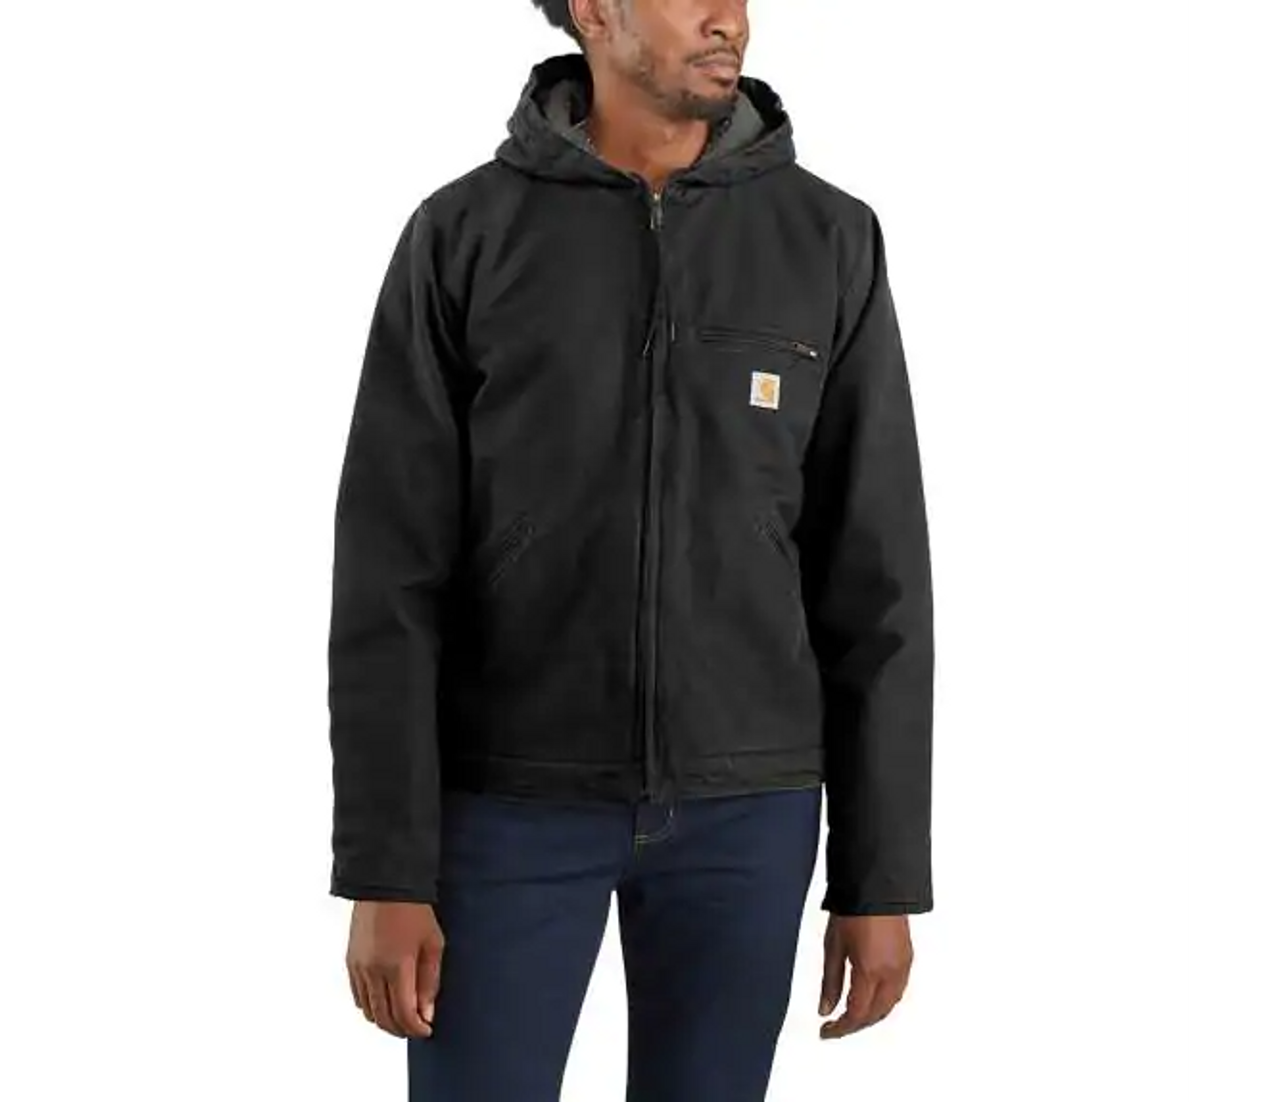 CARHARTT® WASHED DUCK SHERPA LINED JACKET-104392